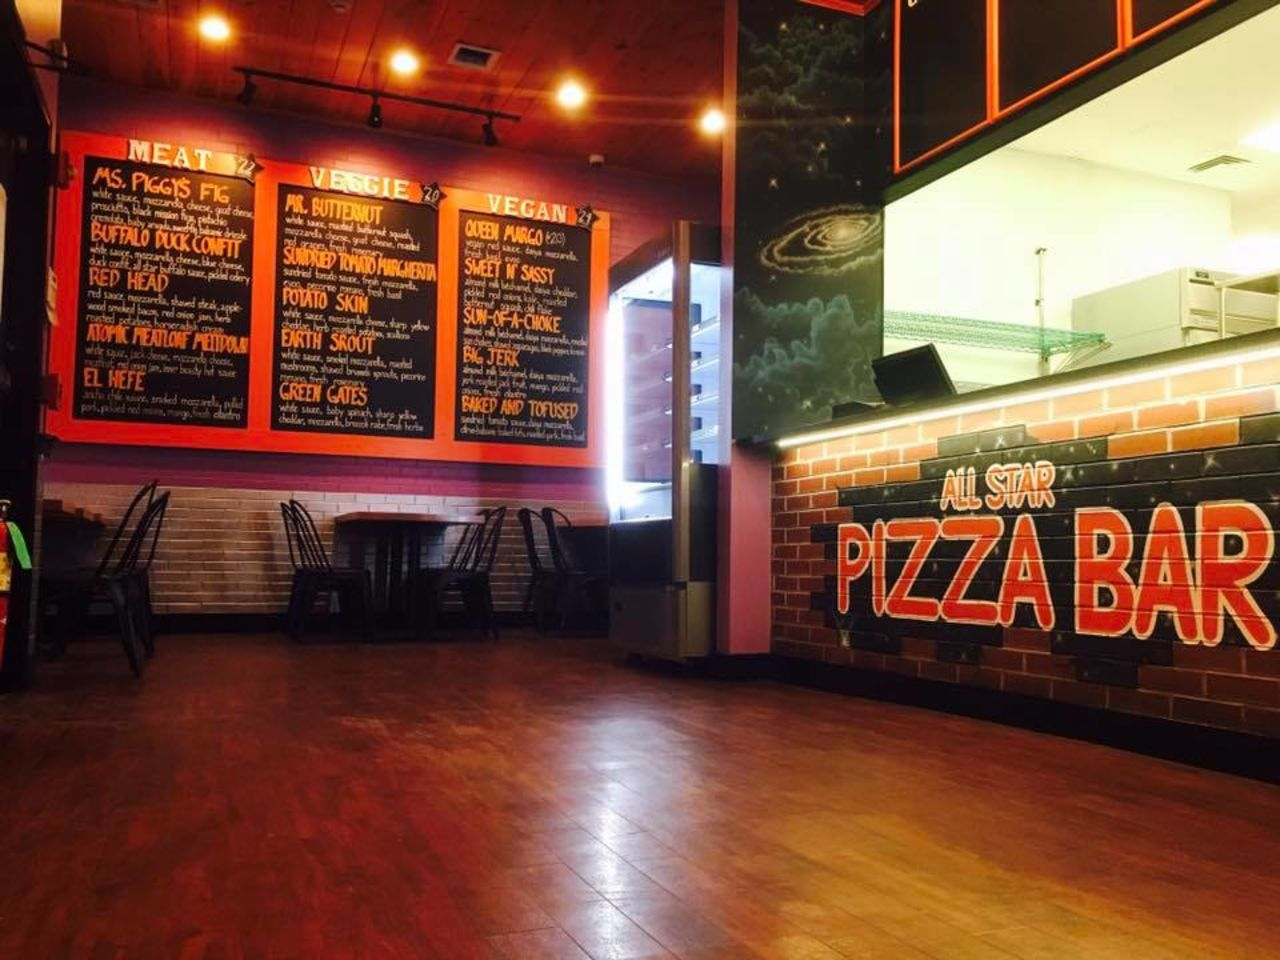 A photo of All Star Pizza Bar